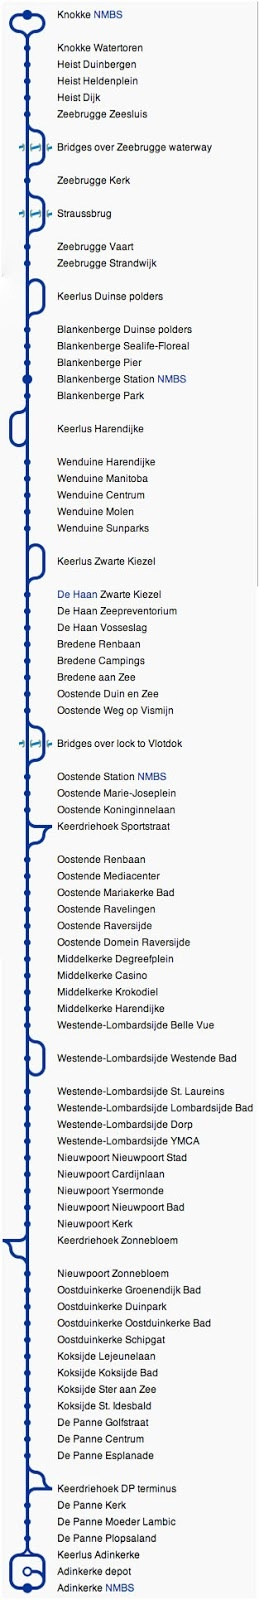 The Coast Tram (Dutch: De Kusttram) is a public transport service connecting the cities and towns along the entire Belgian (West Flanders) coast, between De Panne near the French border and Knokke-Heist